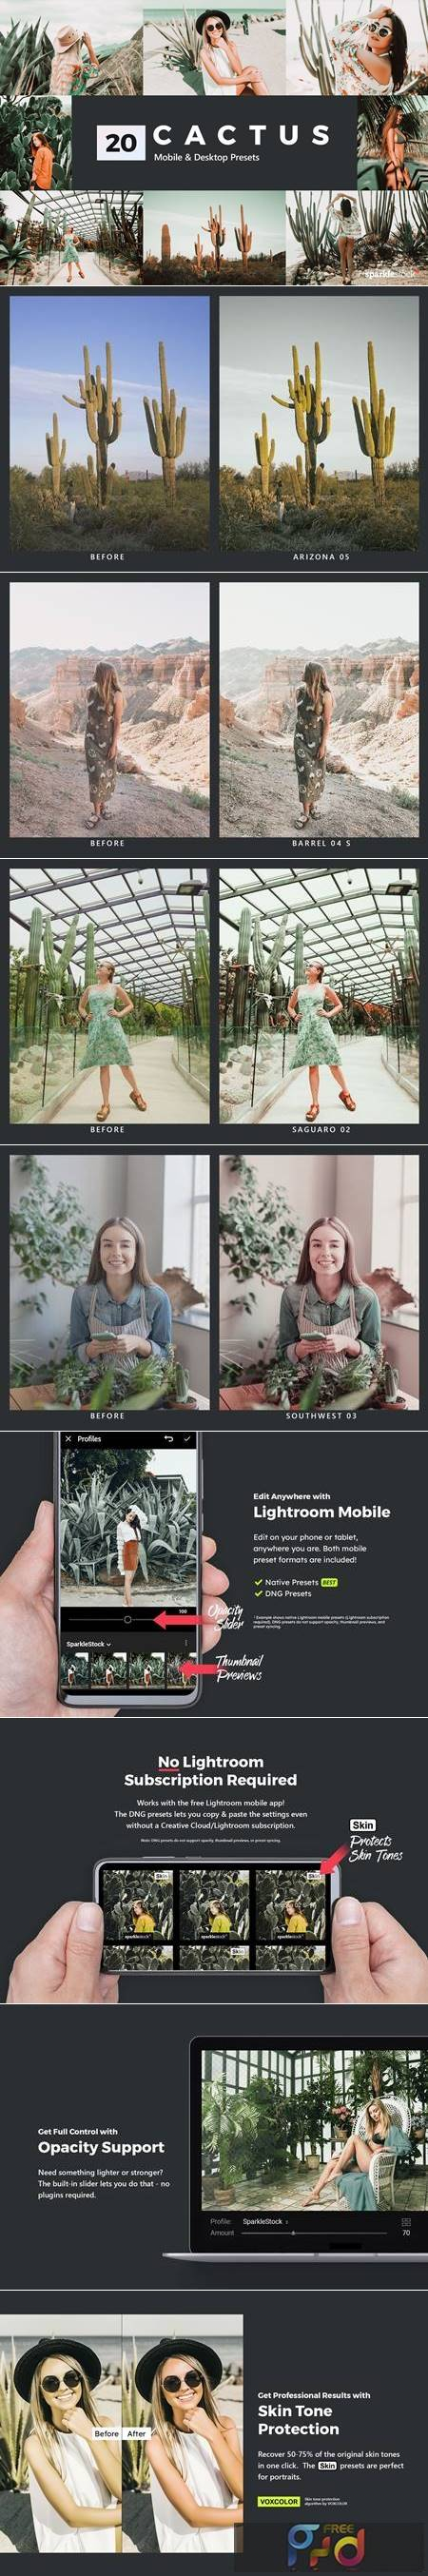 20 Cactus Lightroom Presets and LUTs 5206569 1